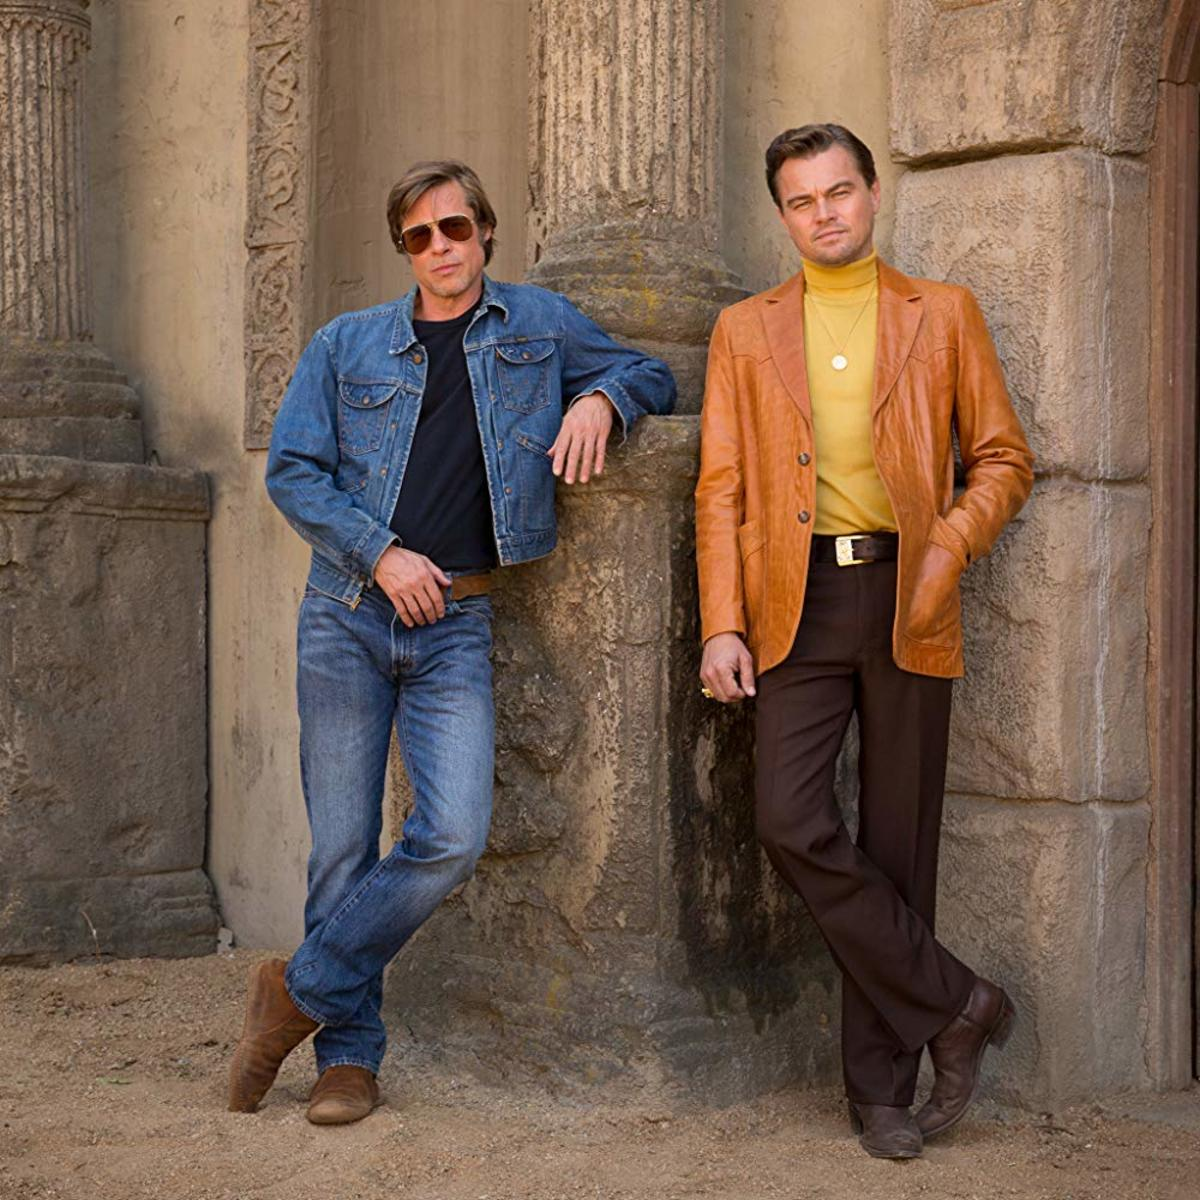 once-upon-a-time-in-hollywood-2019-a-groovy-movie-review